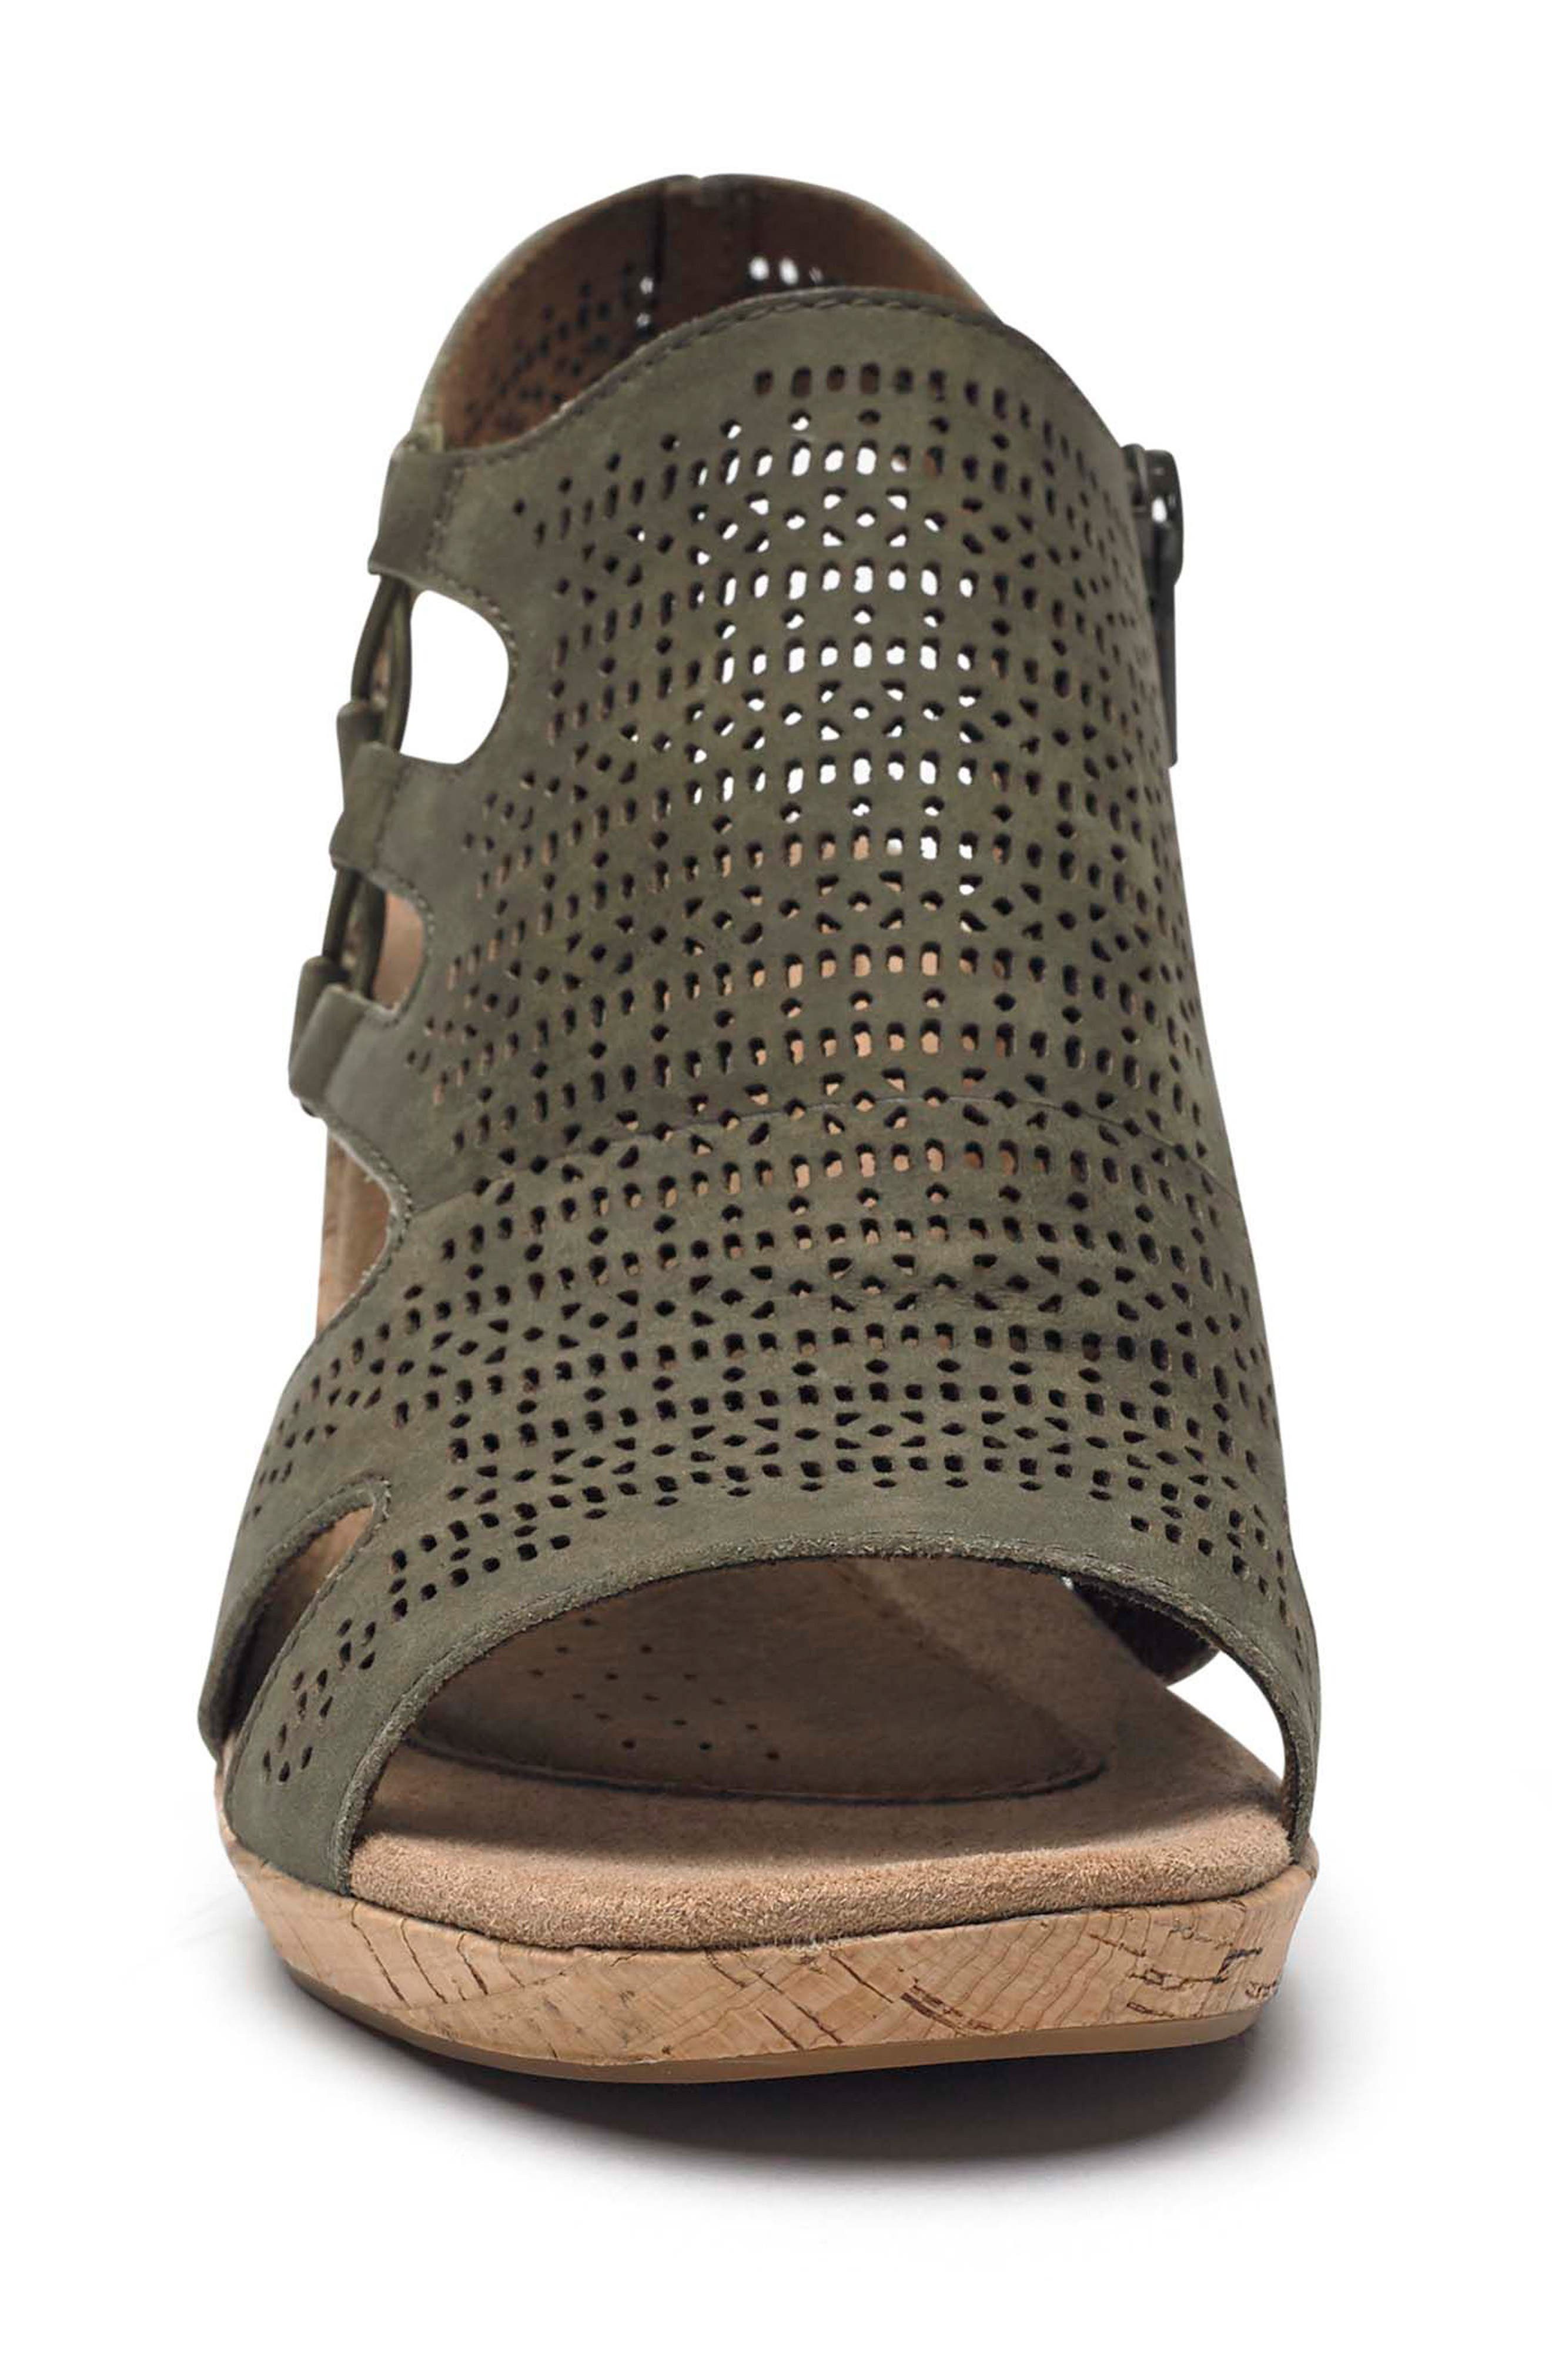 Janna Perforated Wedge Sandal,                             Alternate thumbnail 4, color,                             Green Nubuck Leather